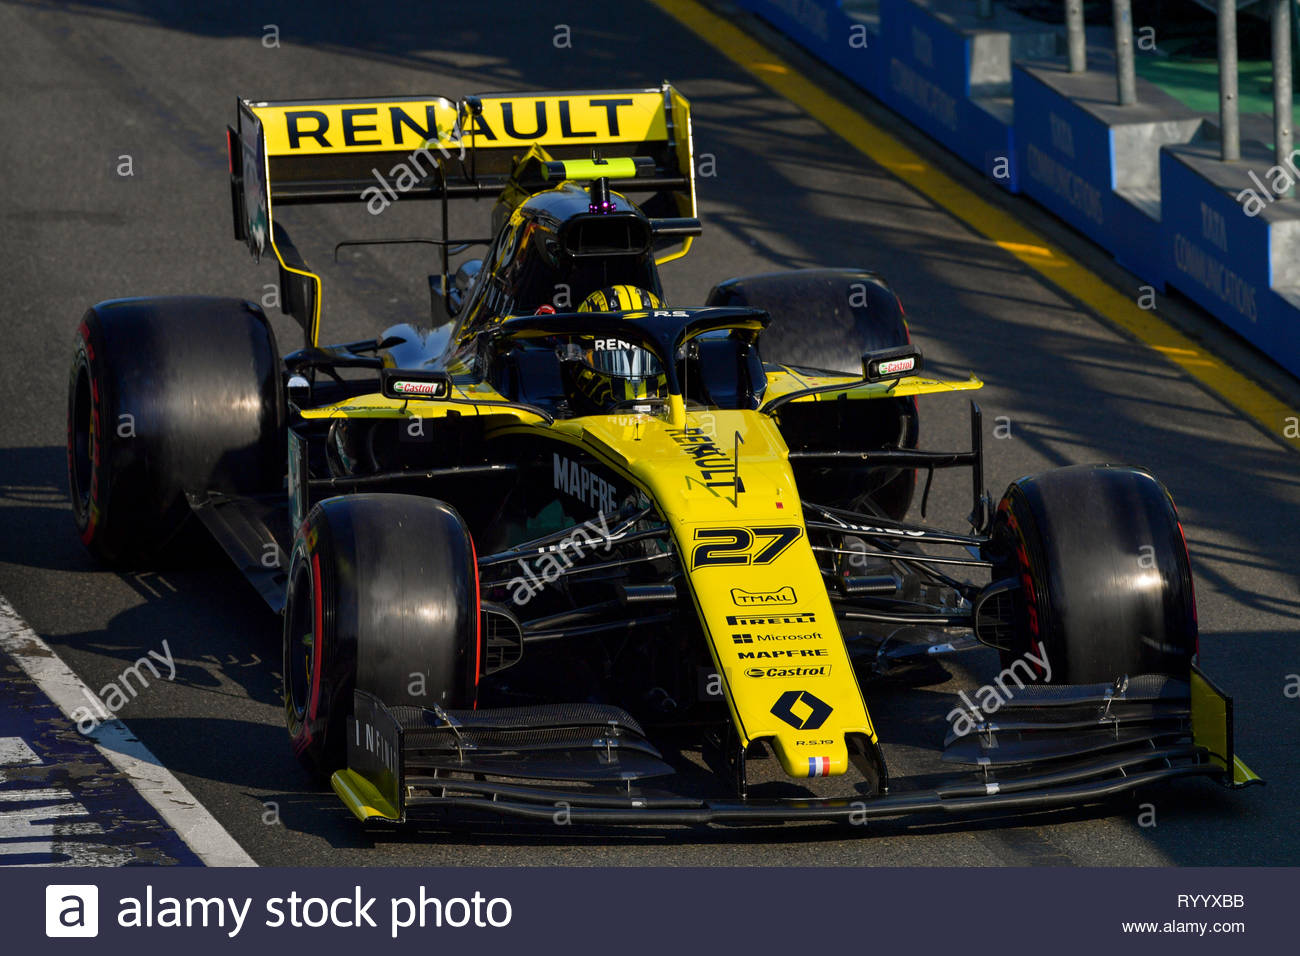 Melbourne, Australia  16th Mar, 2019  MELBOURNE GRAND PRIX